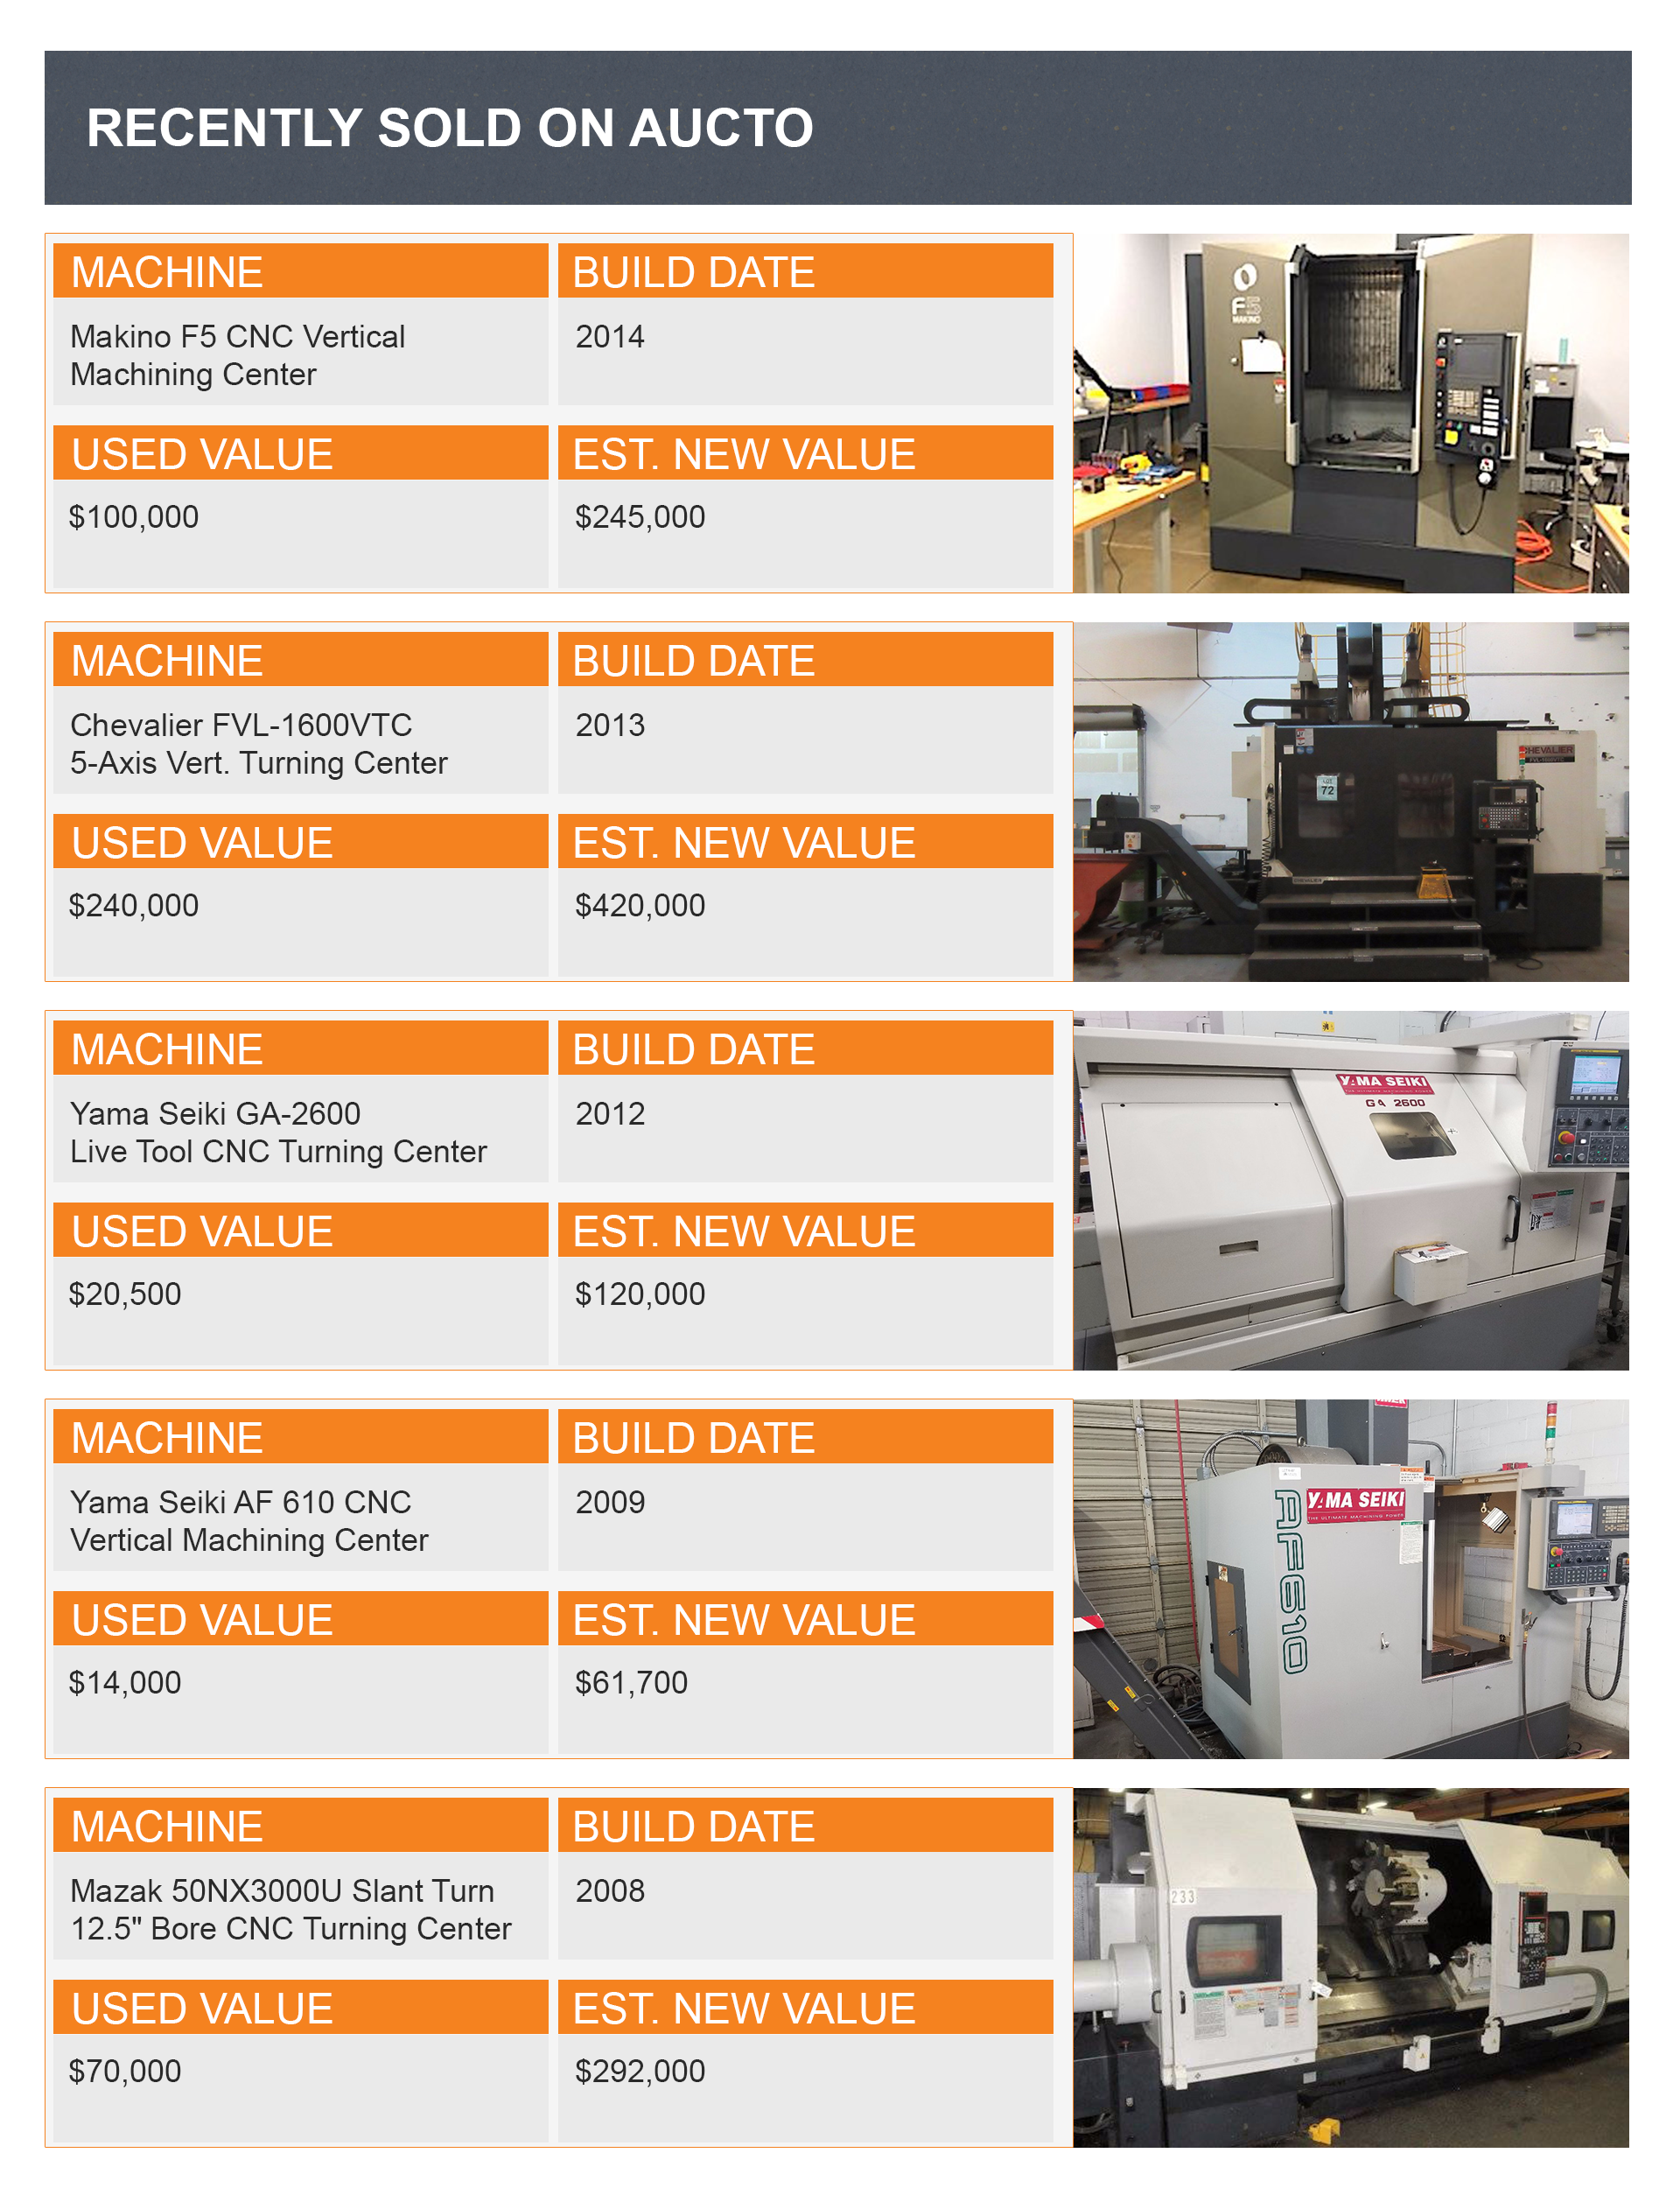 New & Used Price Comparision of Recently Sold Metalworking Machines